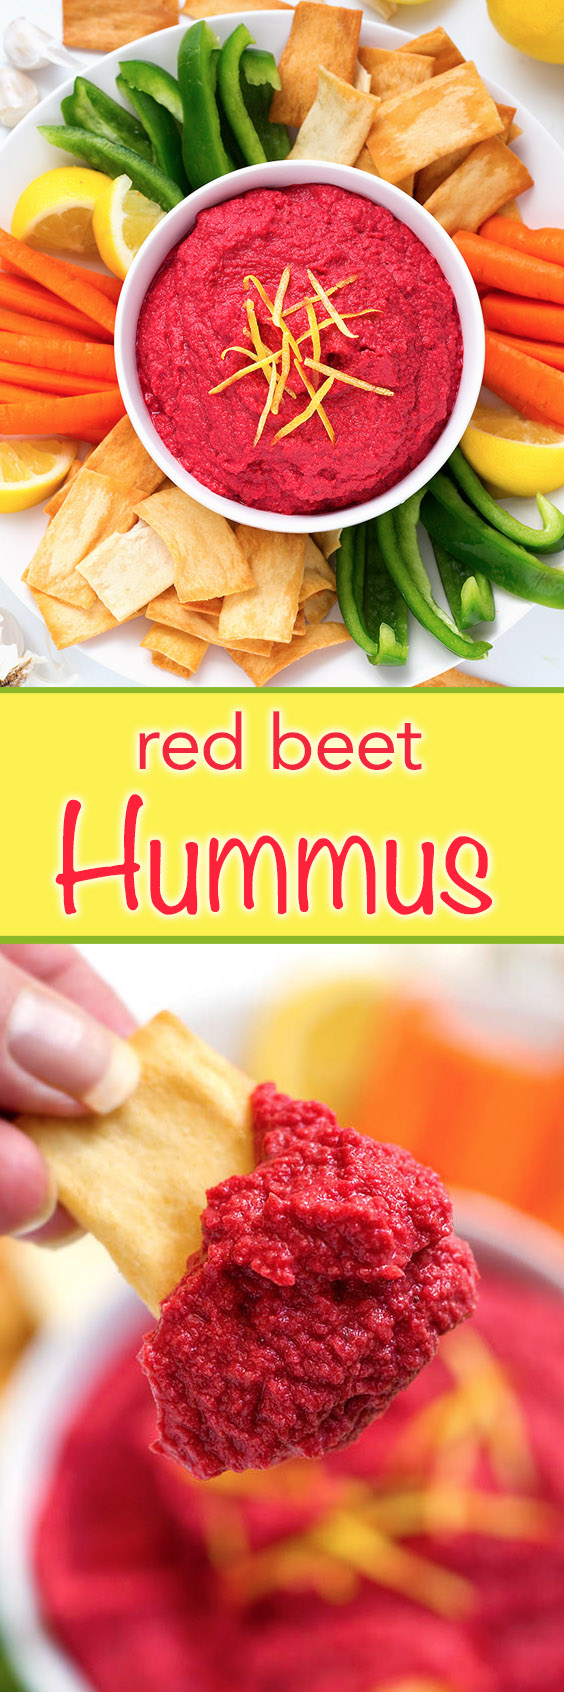 Blood Red Beet Hummus with Carrot Fingers Blood Red Beet Hummus with Carrot Fingers new foto